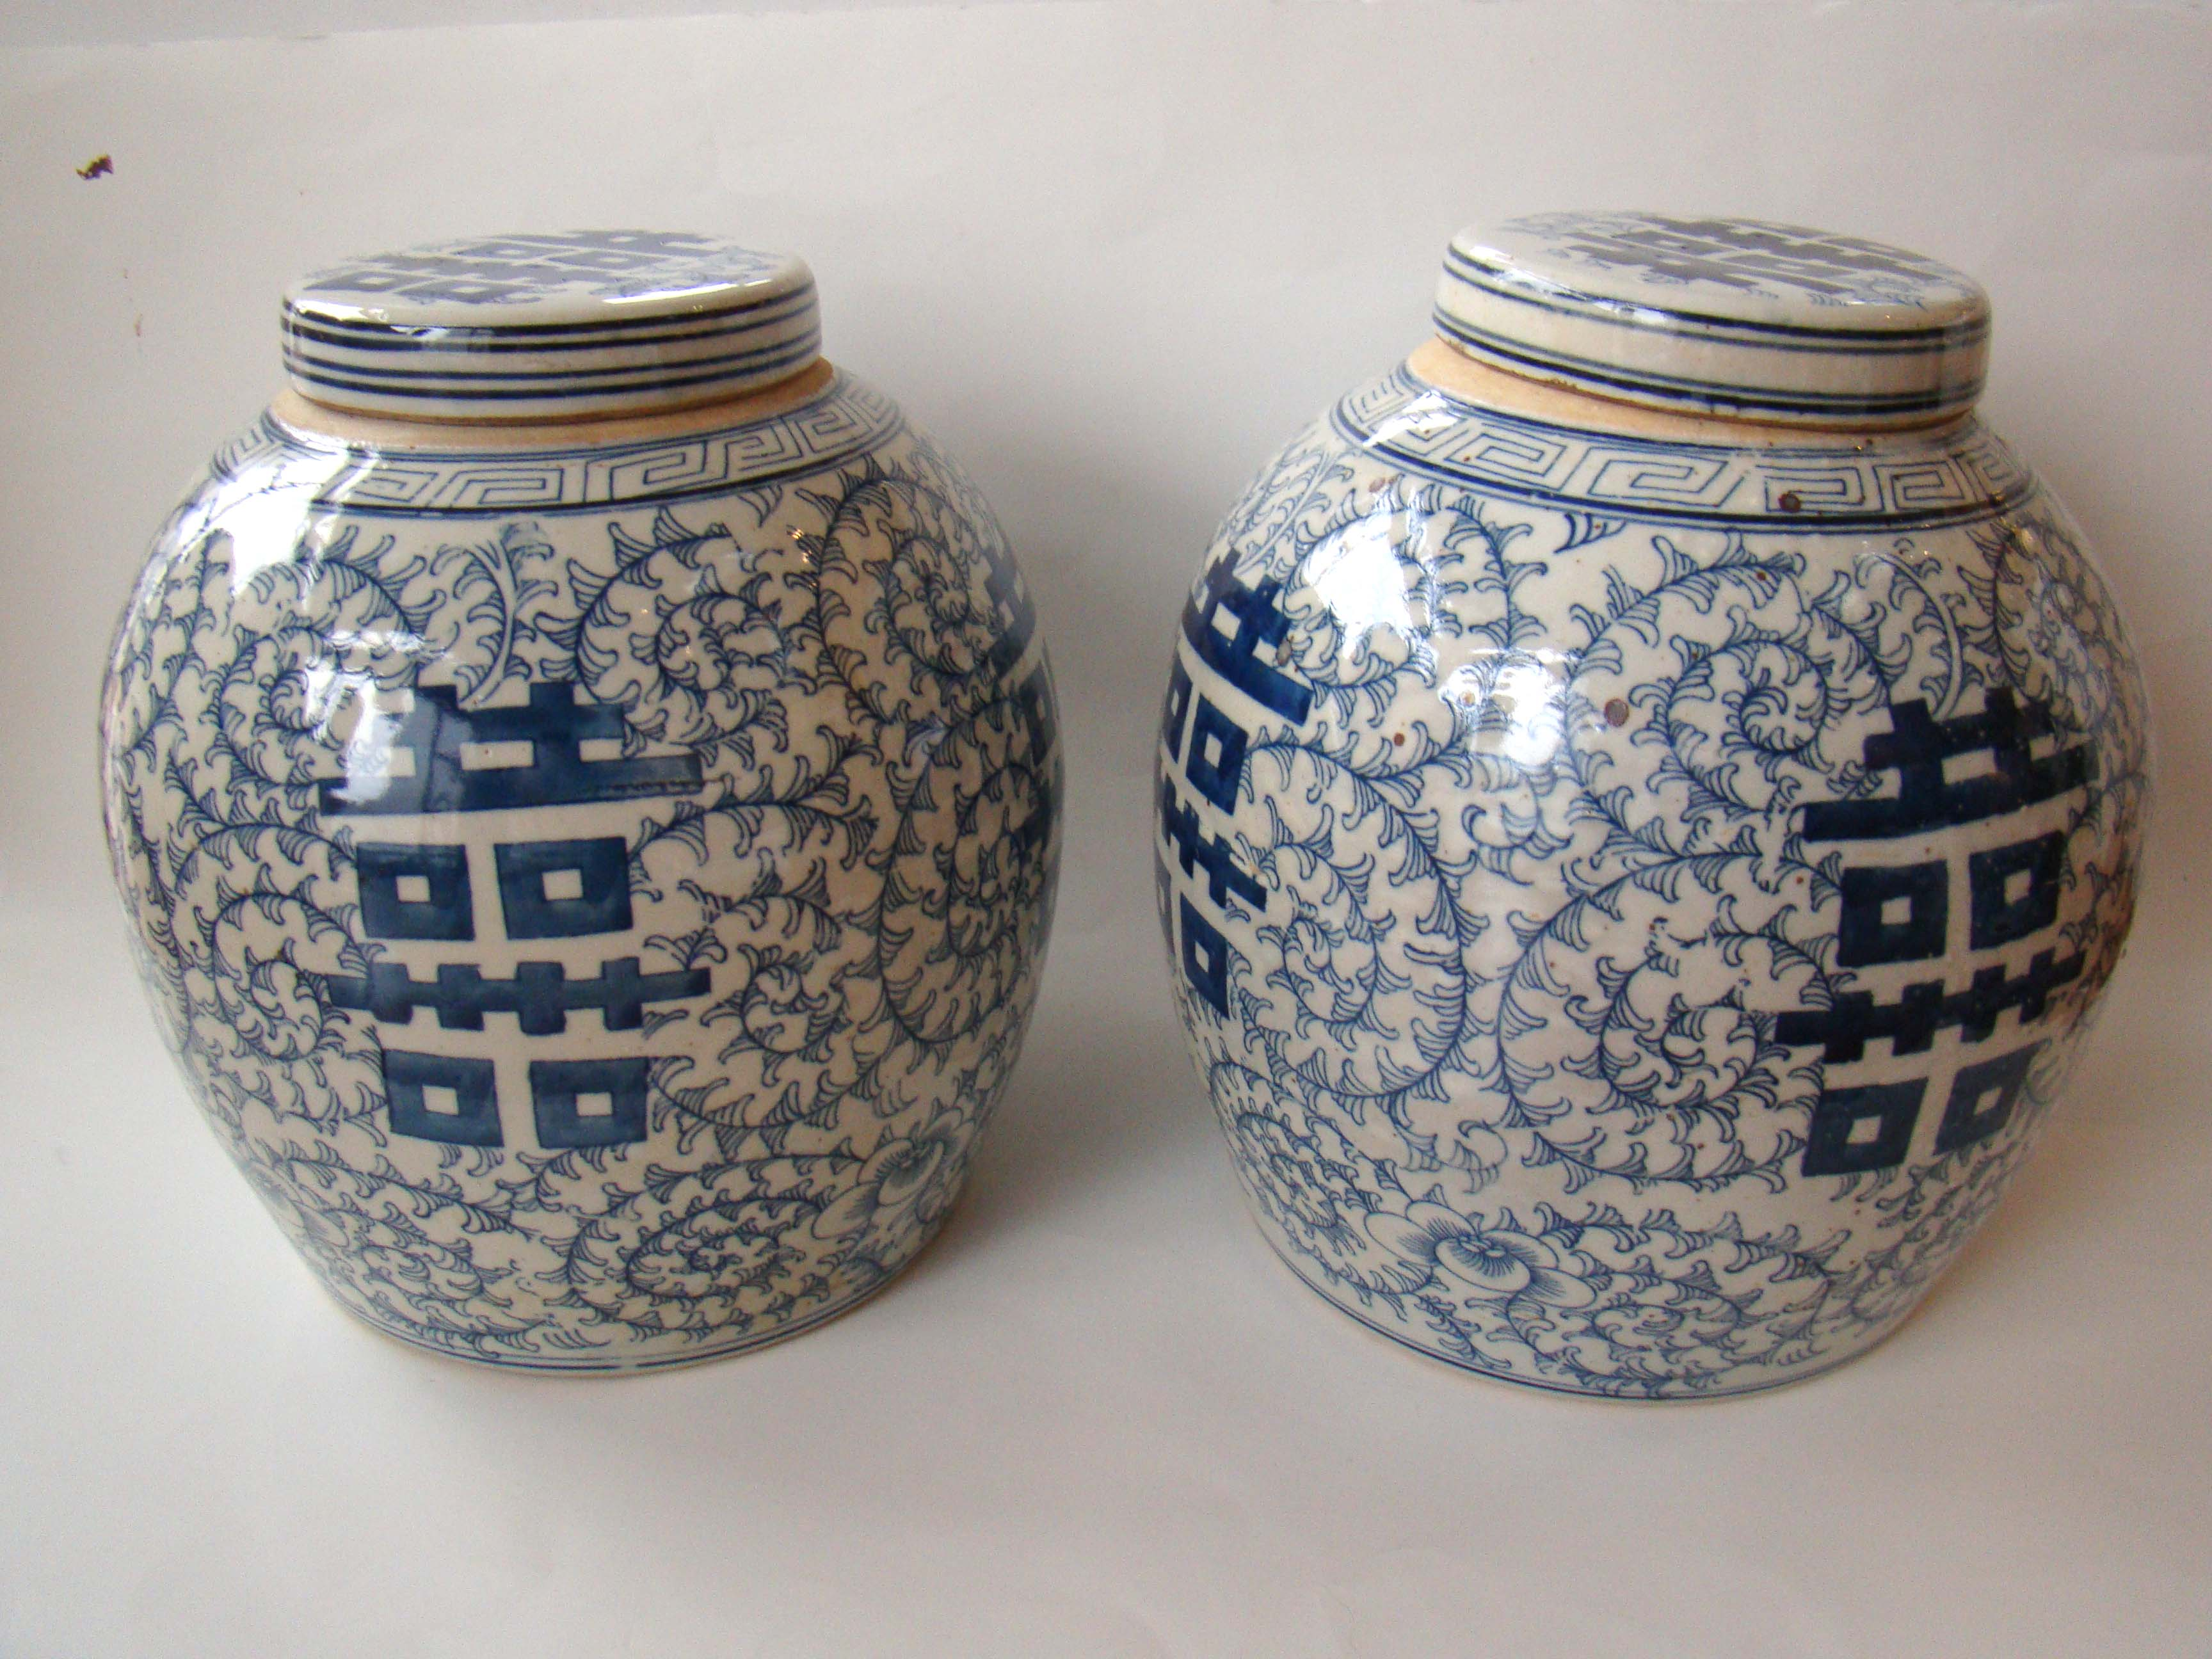 click to view larger image of A pair of Chinese ginger jars with the symbols for